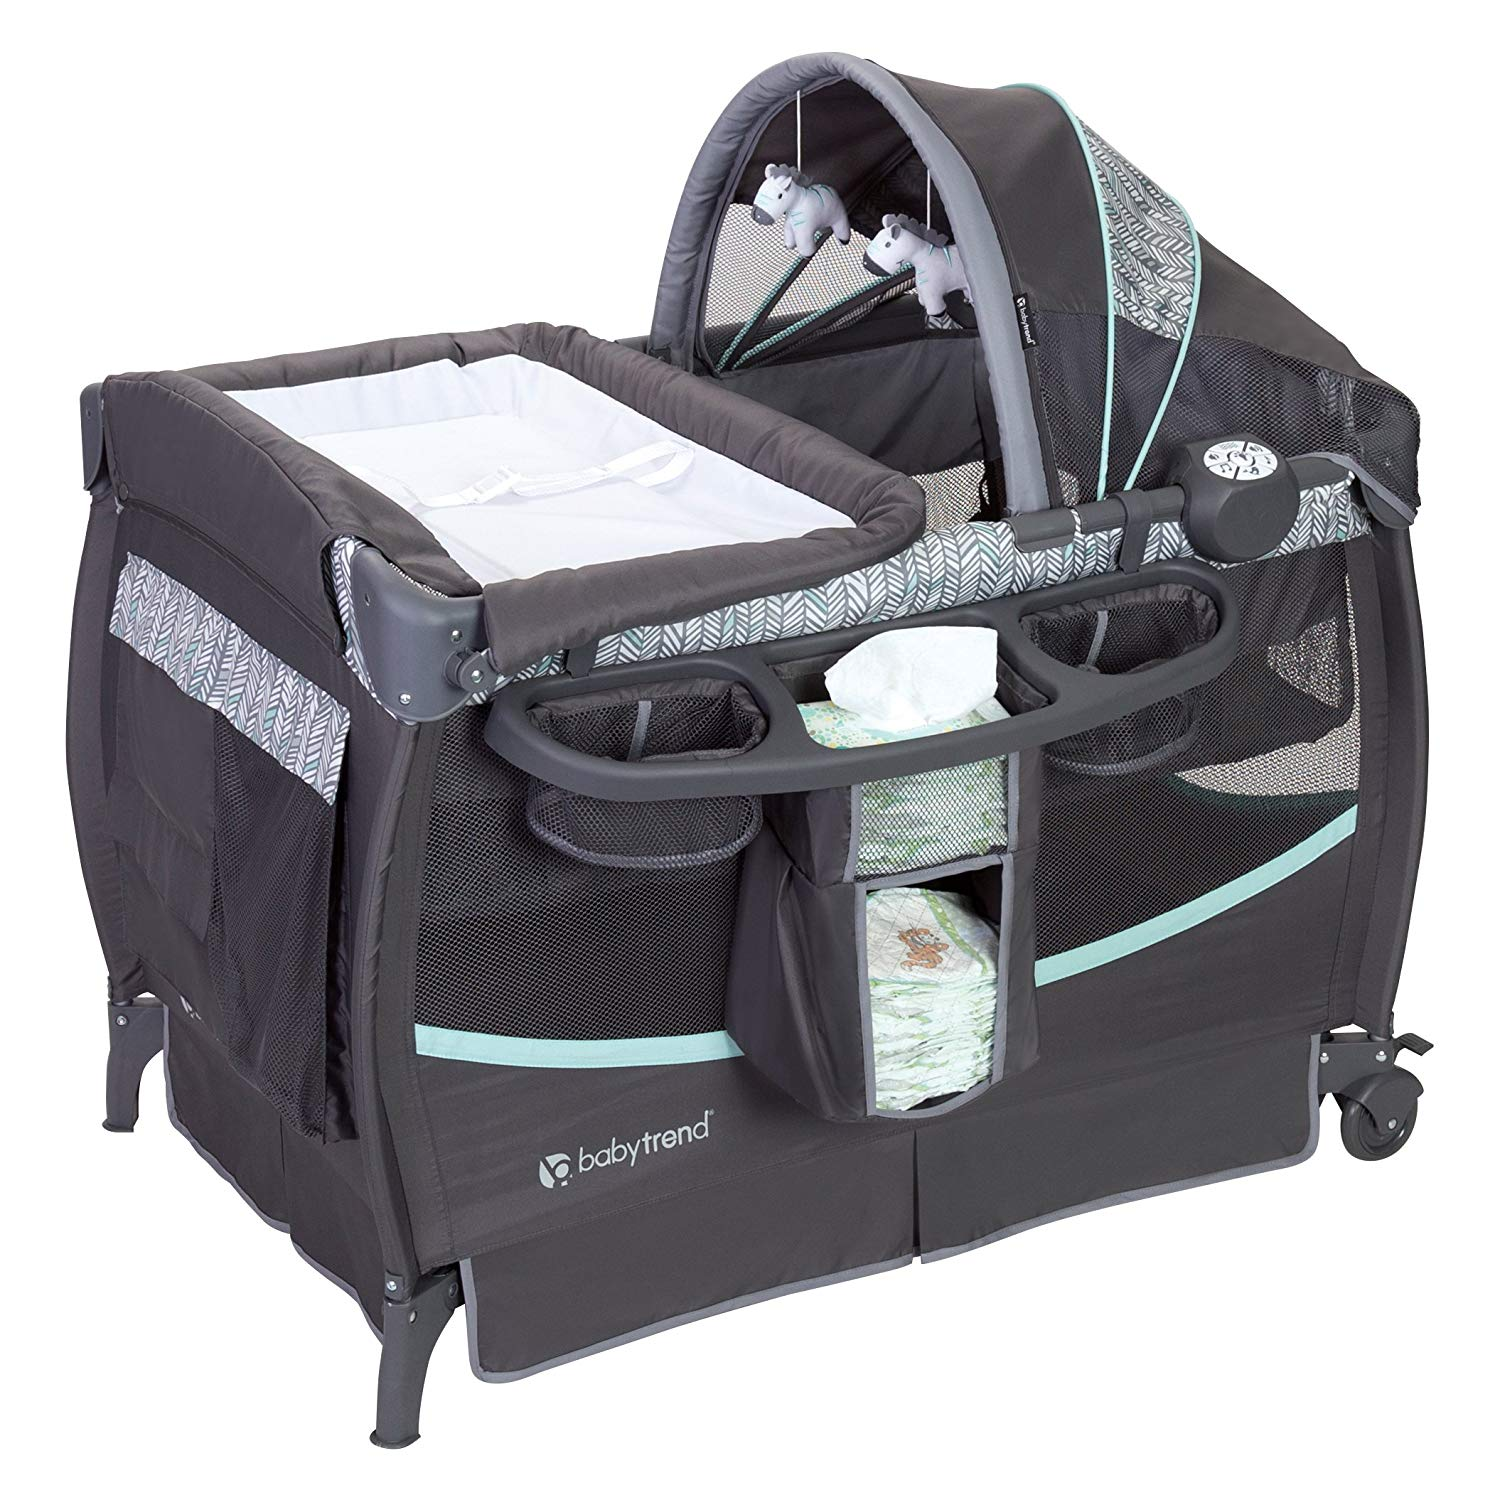 Baby Trend Nursery Deluxe II Center